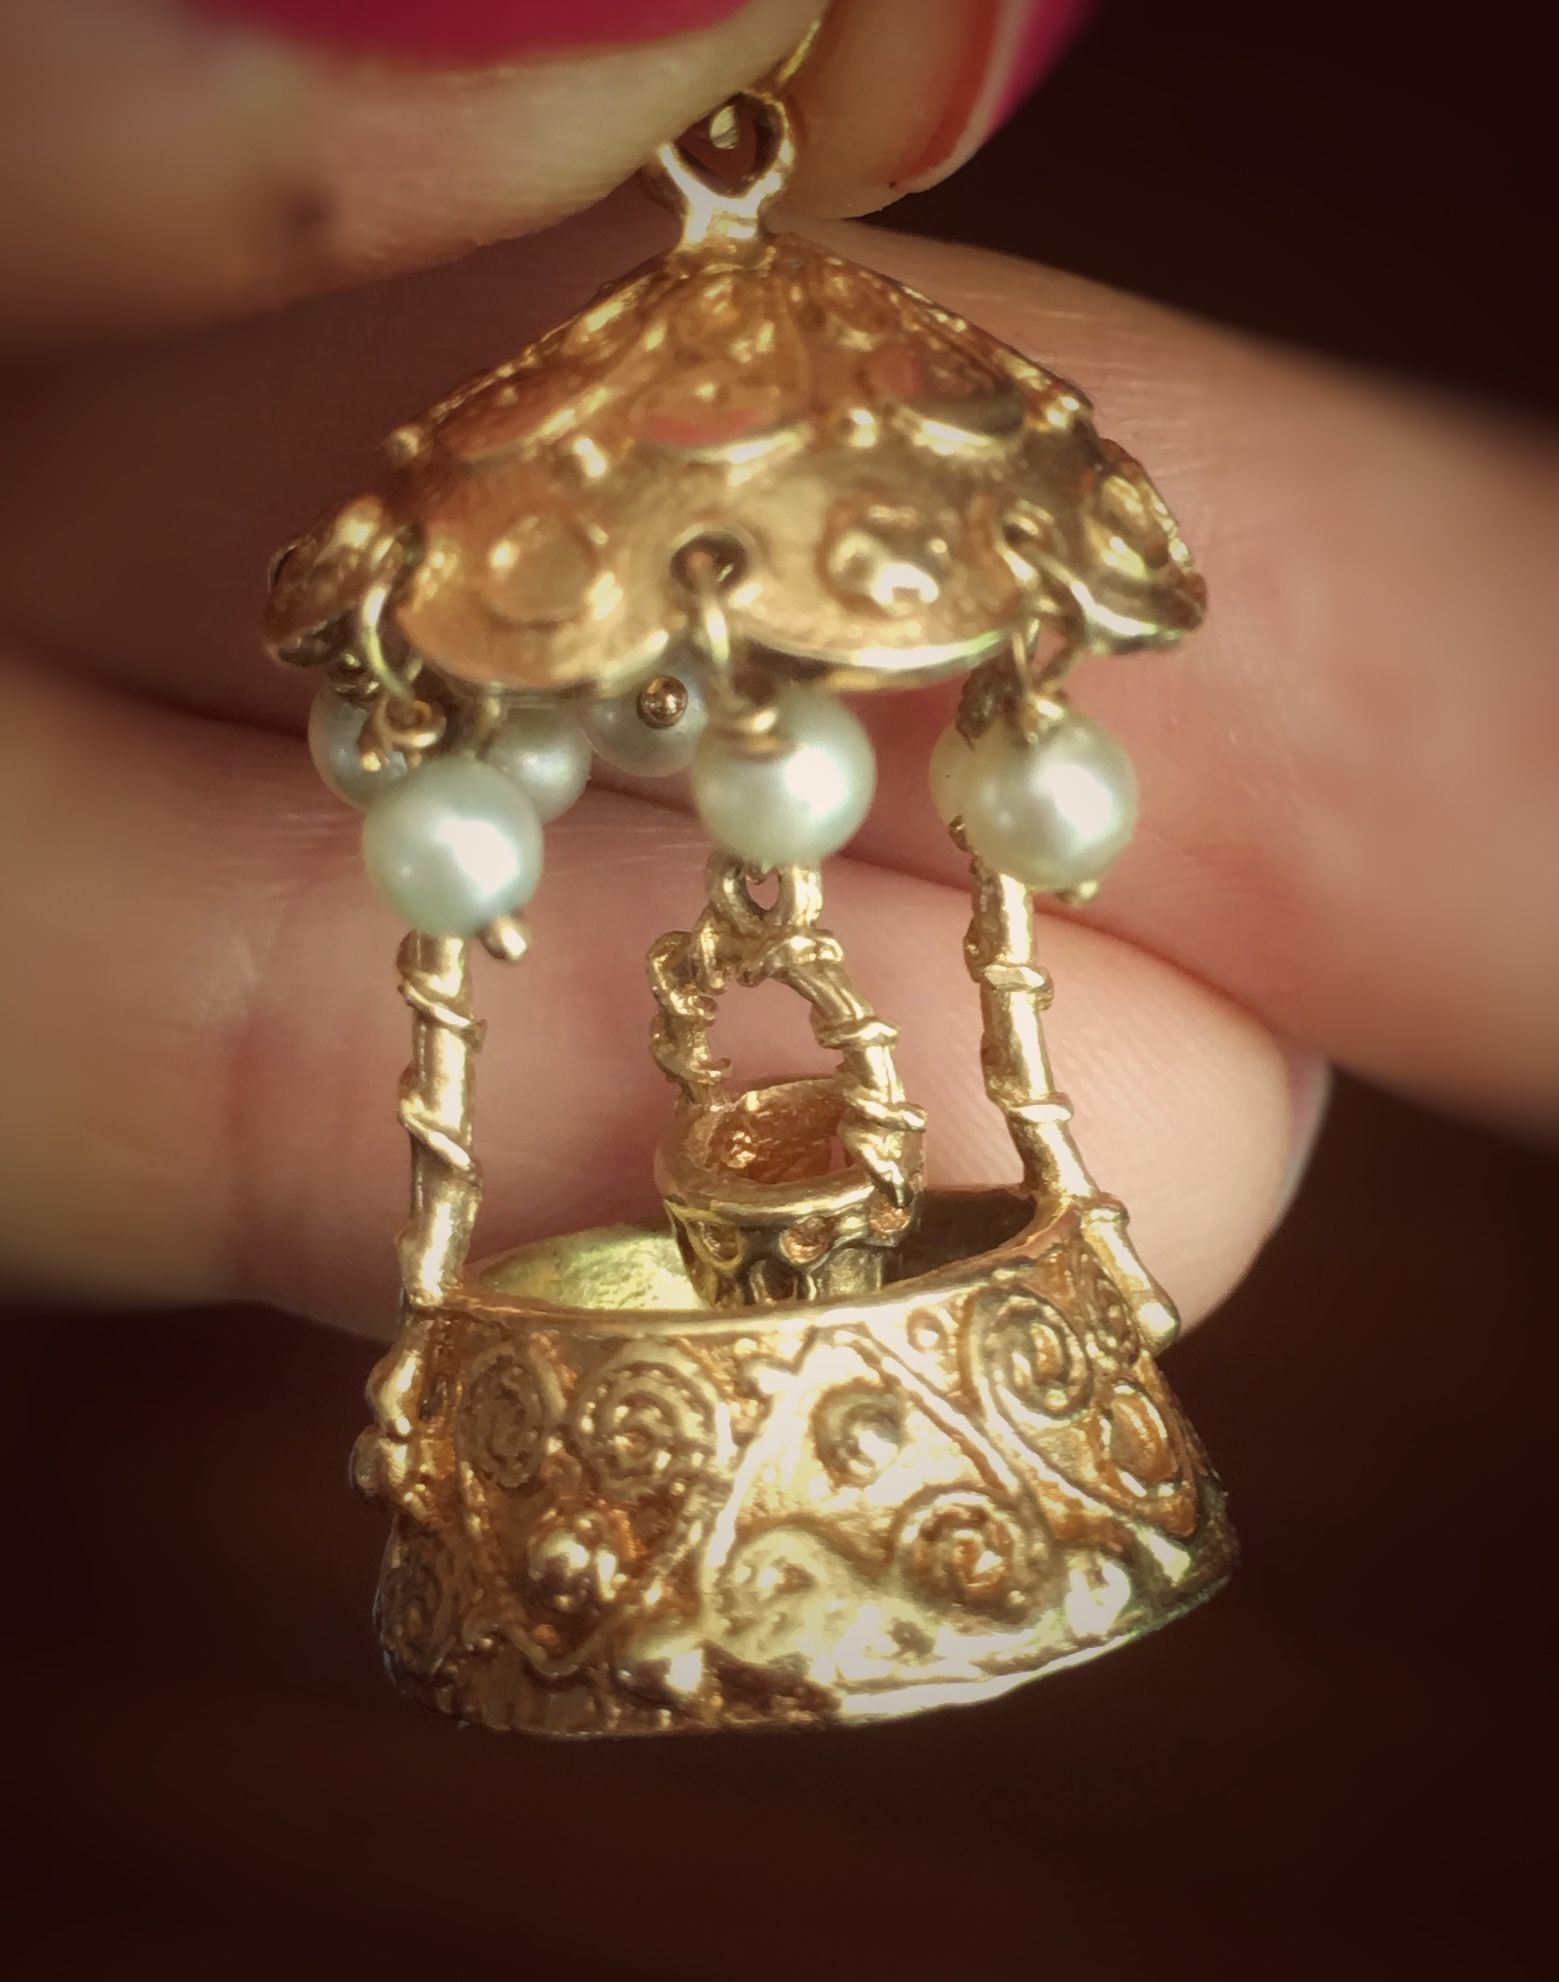 Vintage kt yellow gold u seed pearl wishing well charm we say a